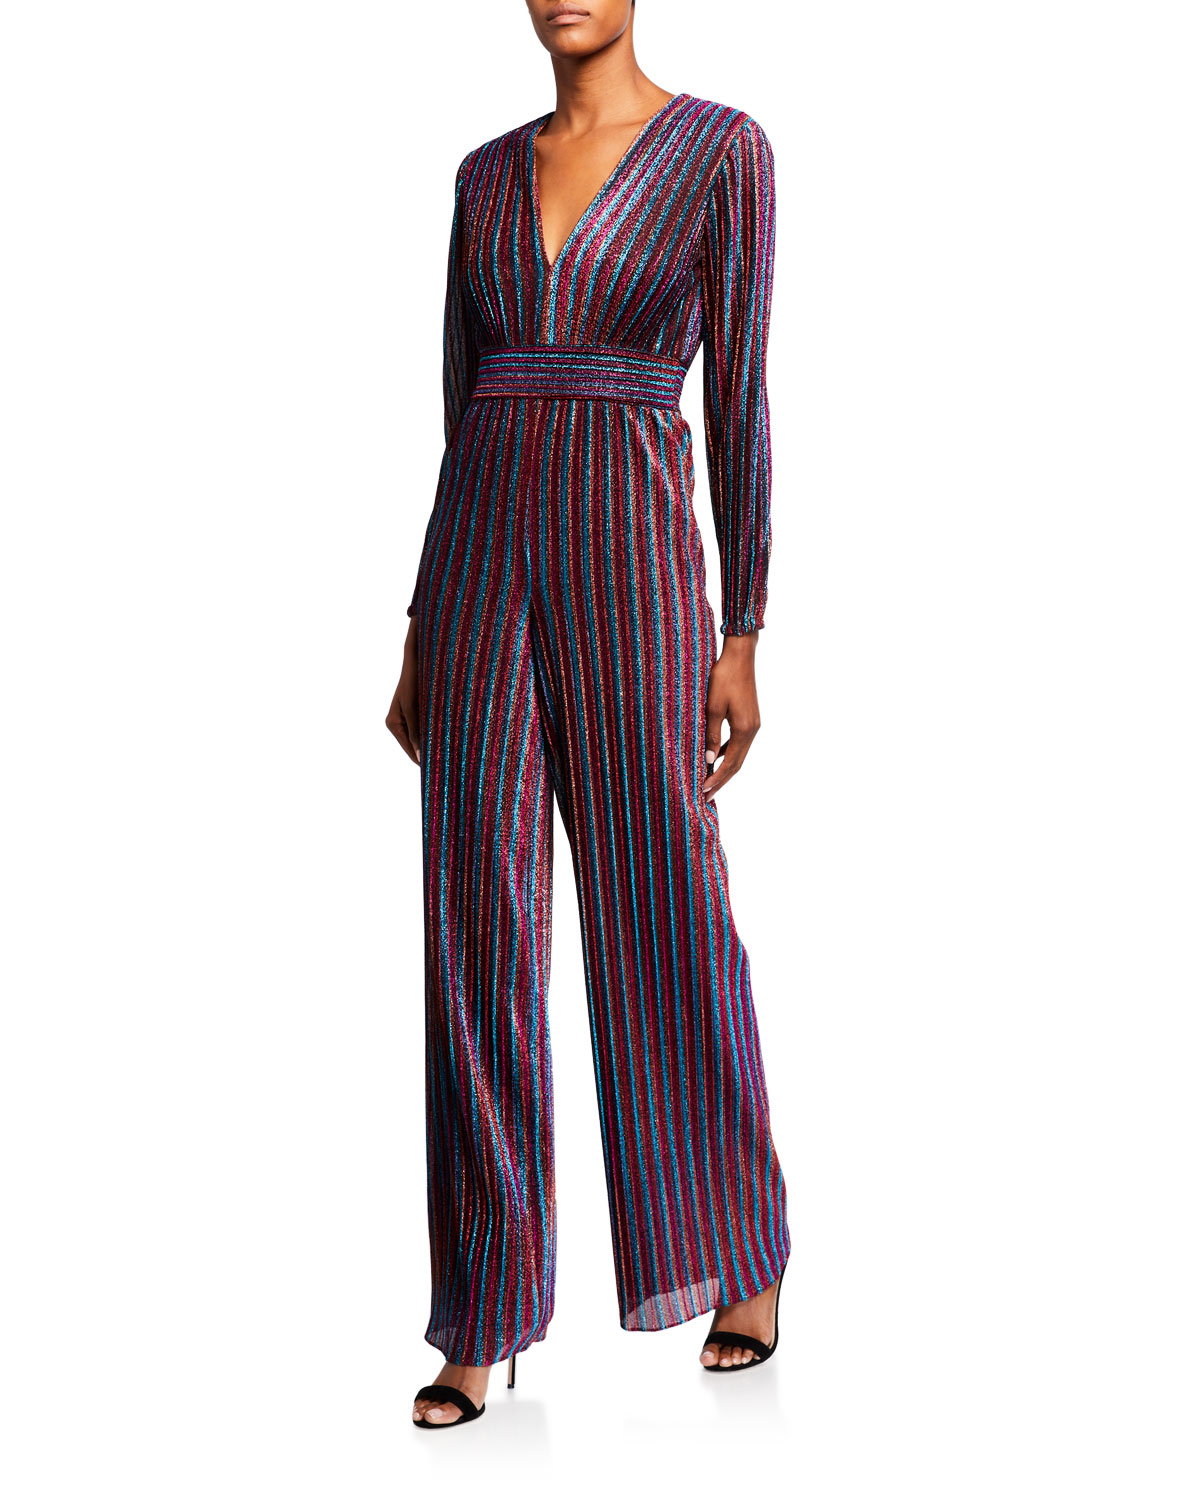 Jonathan Simkhai Suits RAINBOW PLEATS DEEP V JUMPSUIT